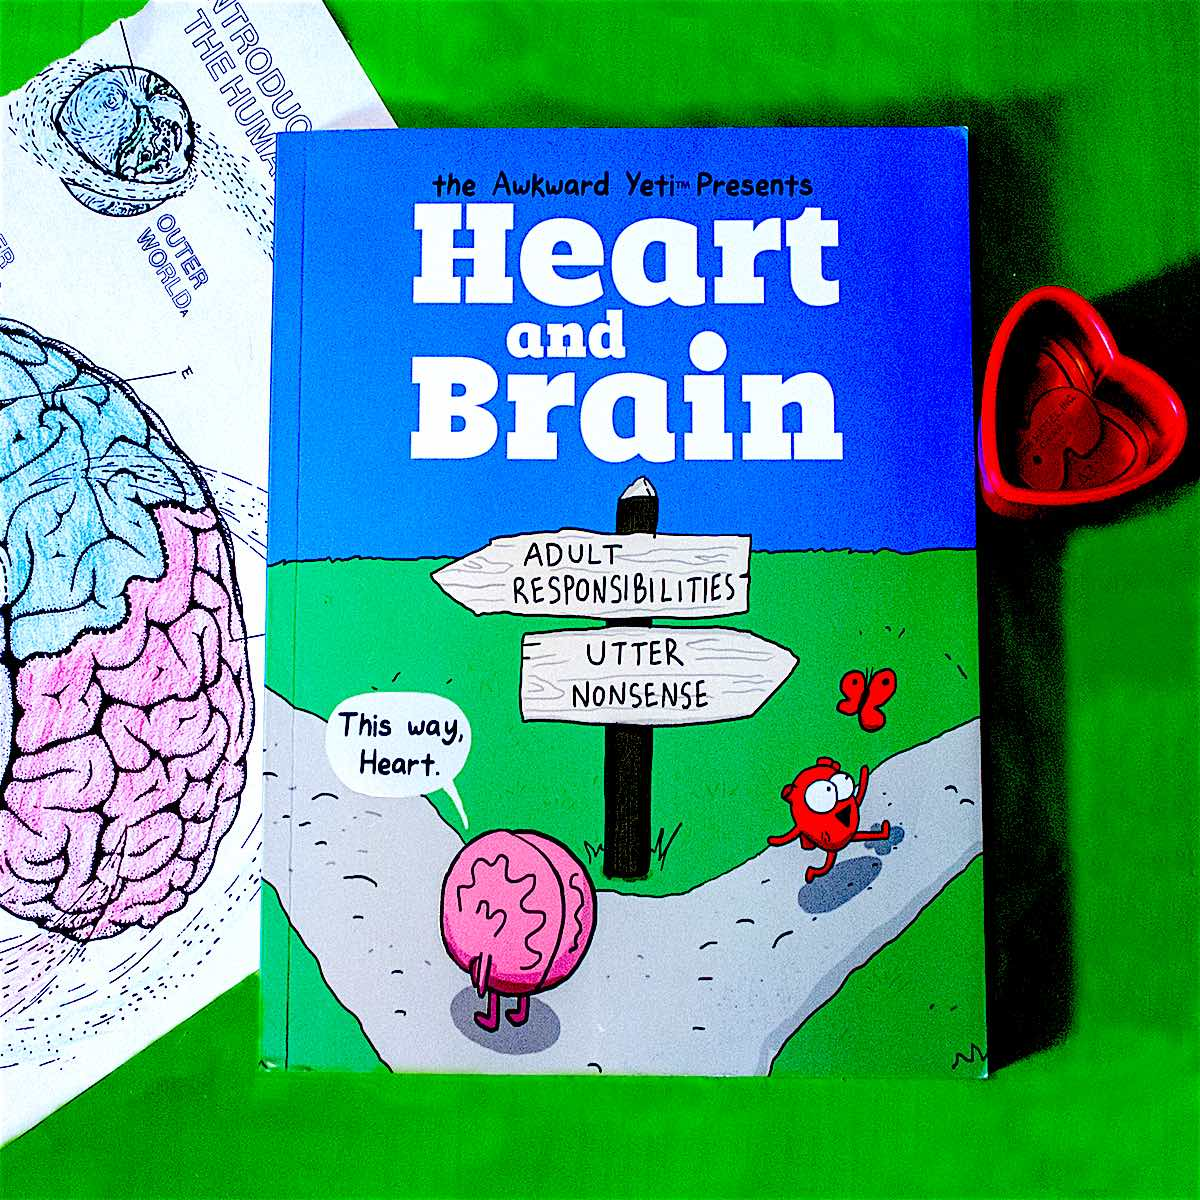 Heart and Brain have extremely different view points but always remain best buds